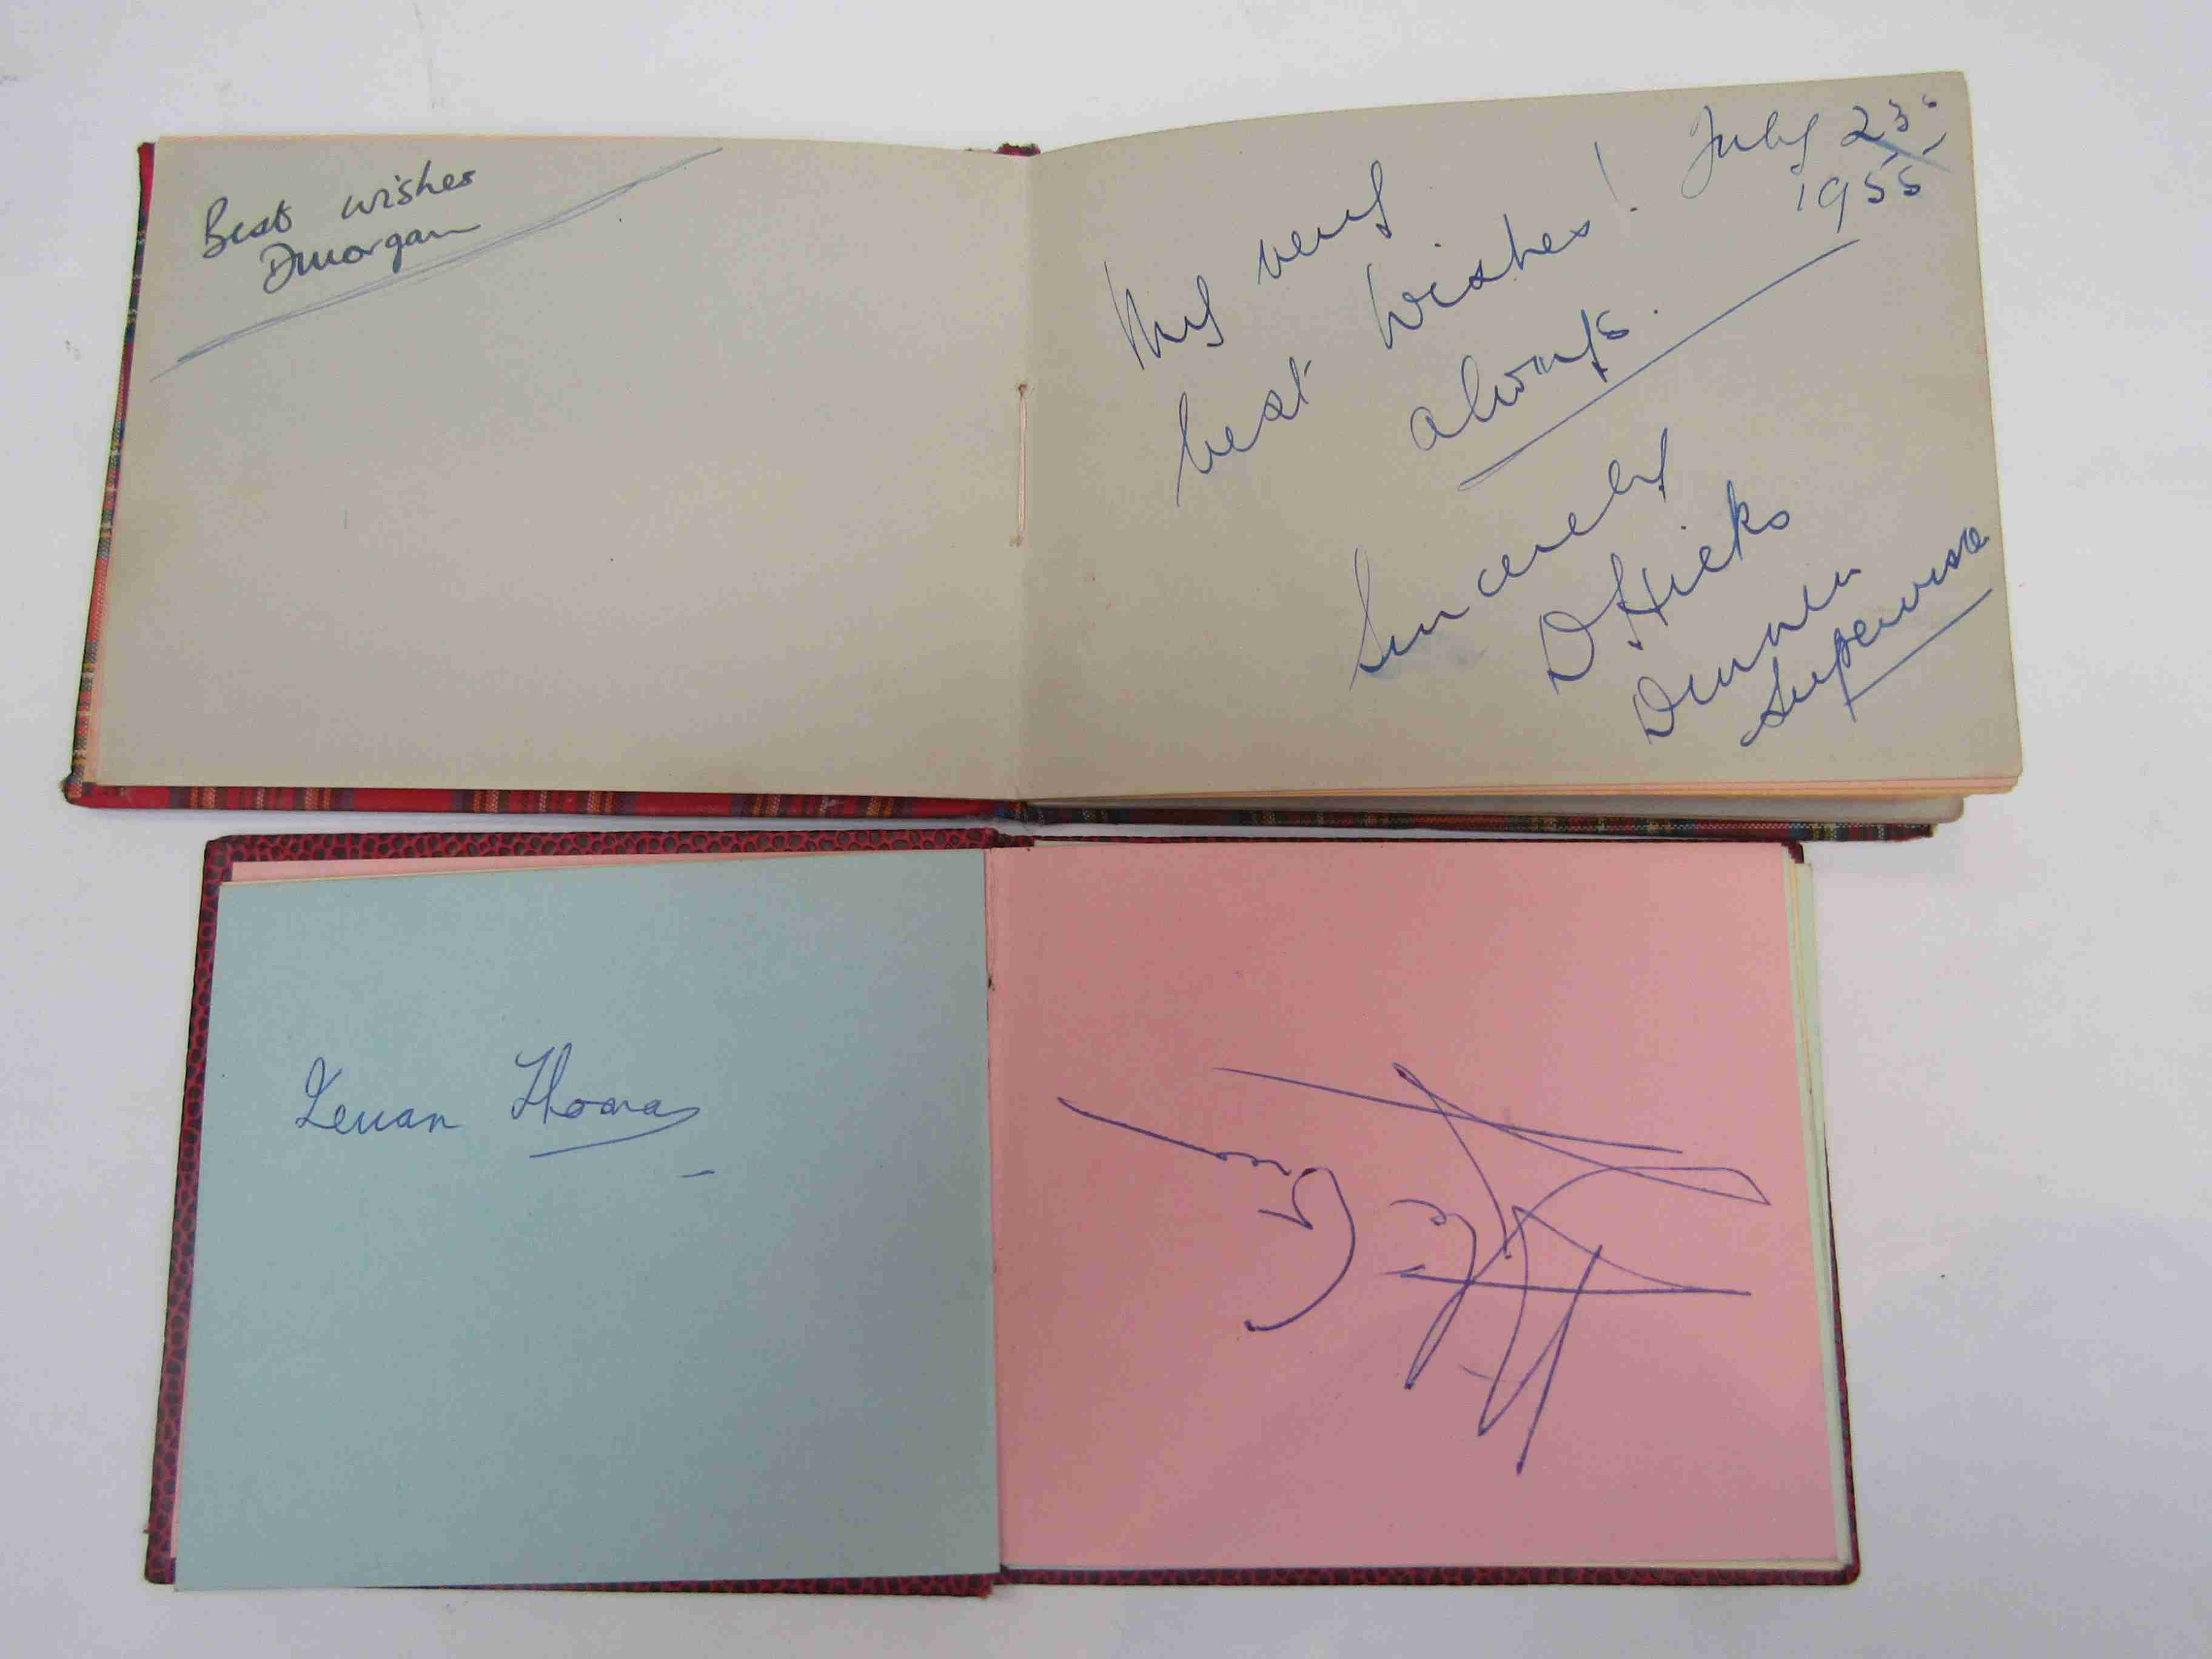 Two 1950s/60s autograph books containing autographs by Benny Hill, Honor Blackman, Barbara Shelley, - Image 11 of 34